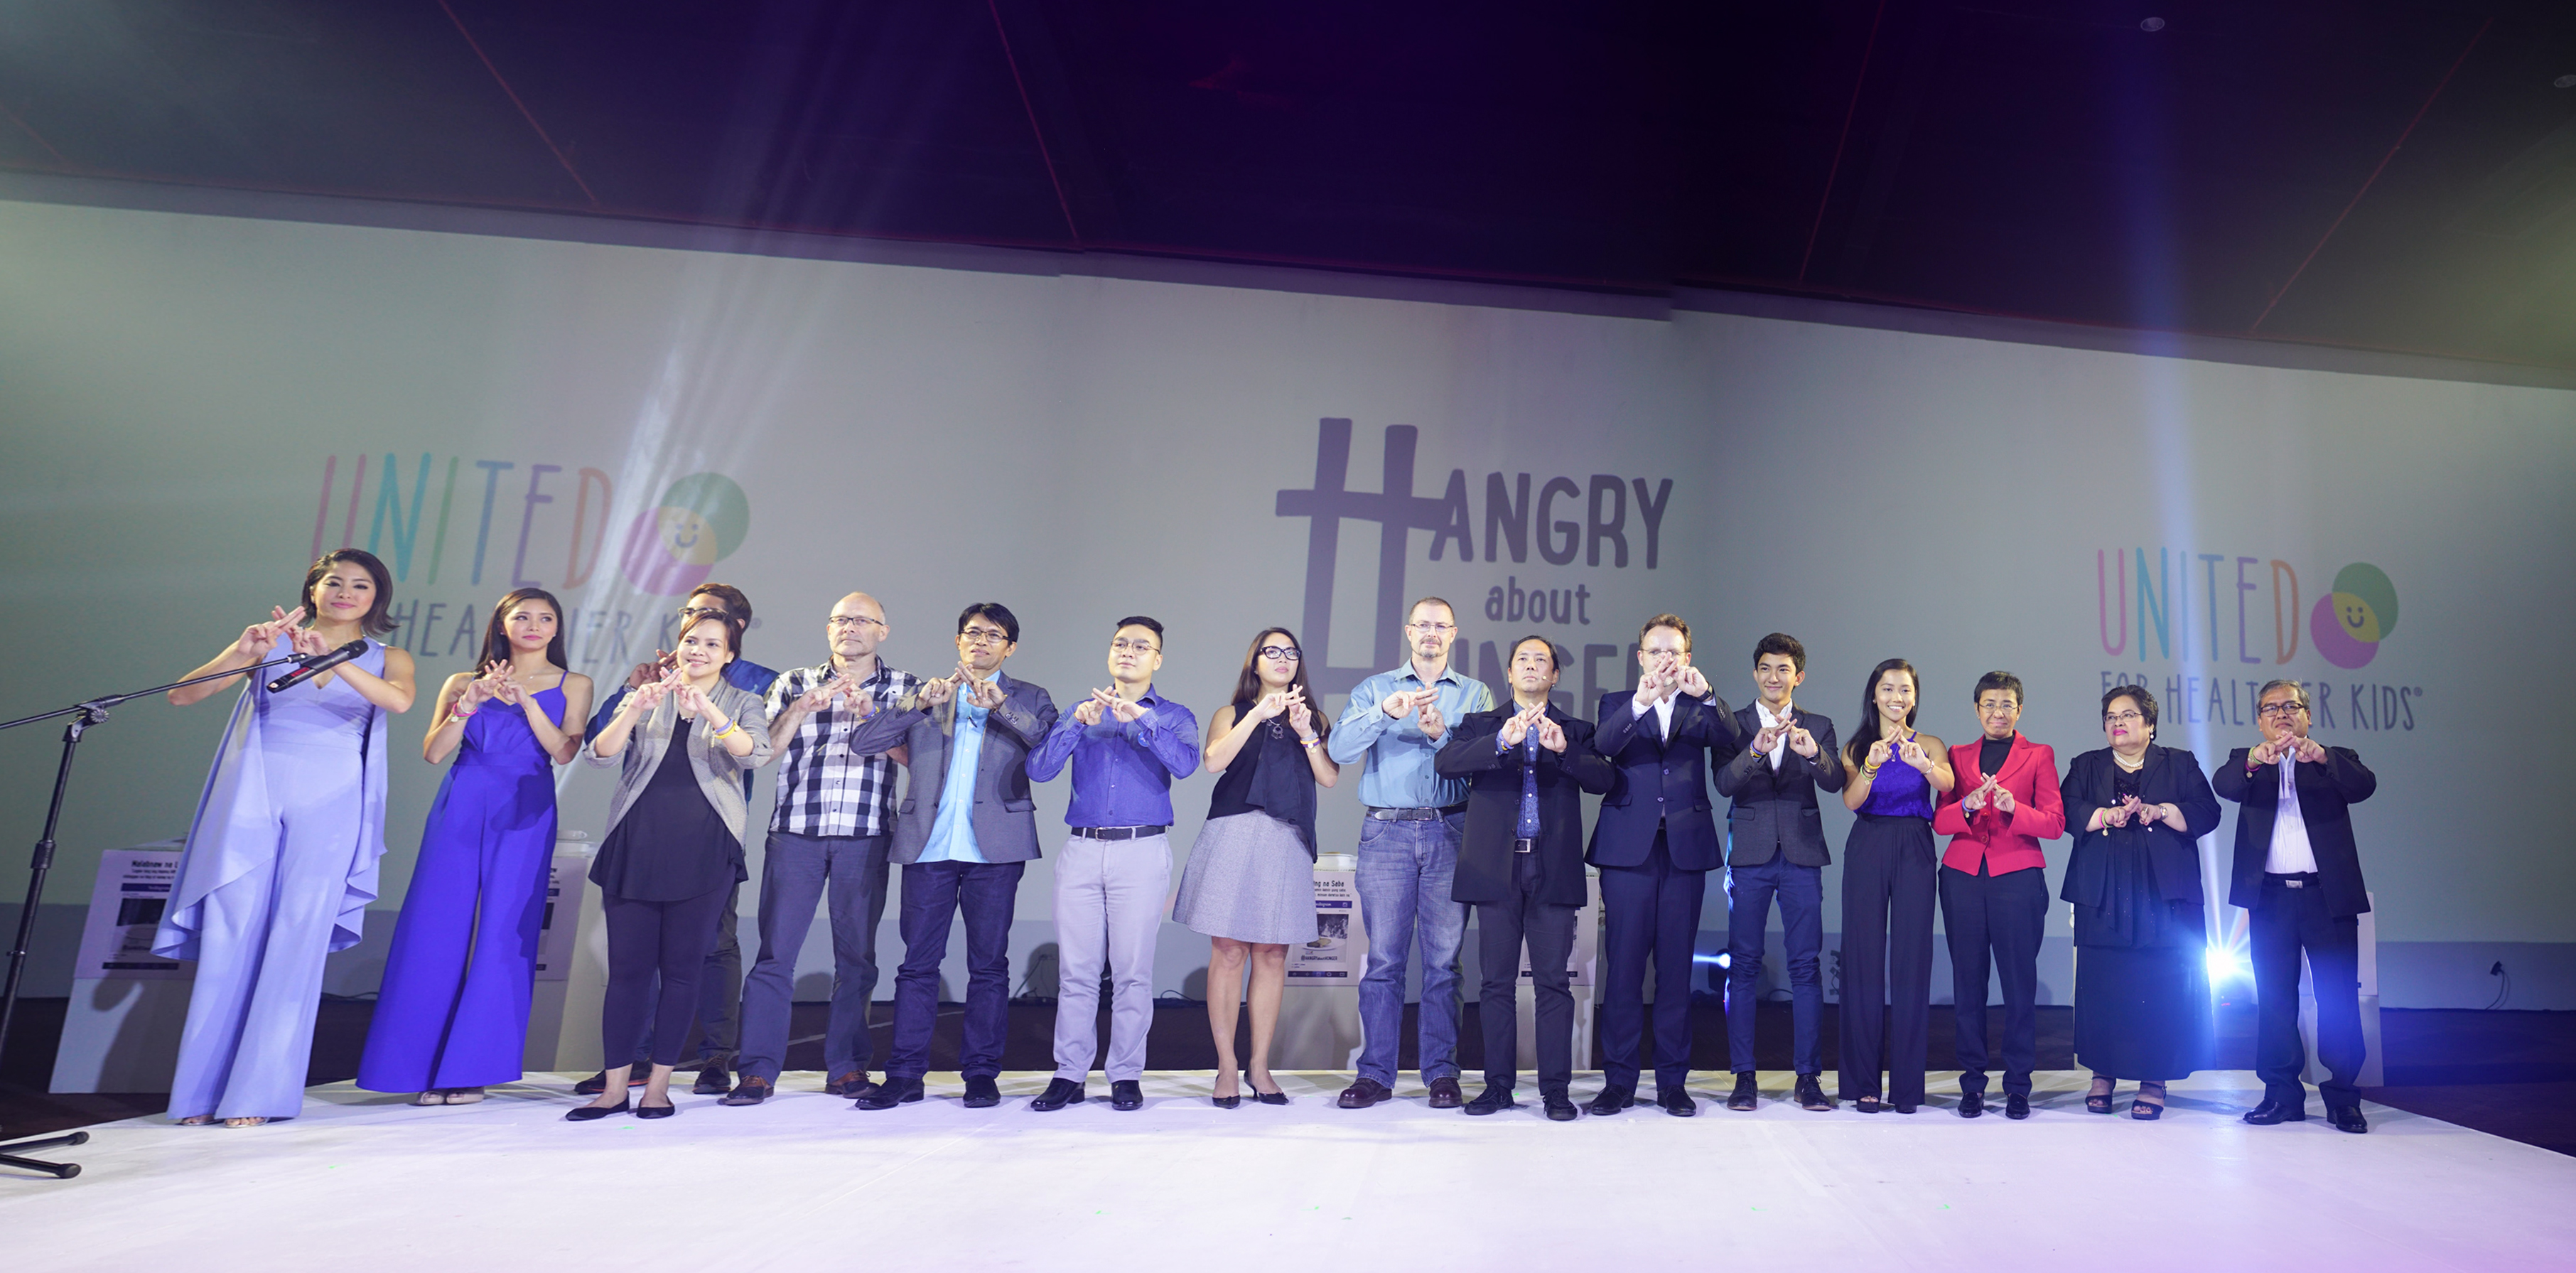 ALL IN. Nestlu00e9 Philippines' top executives join U4HK's partners for the symbolic commitment pledge at the United for Healthier Kids forum on malnutrition onstage.